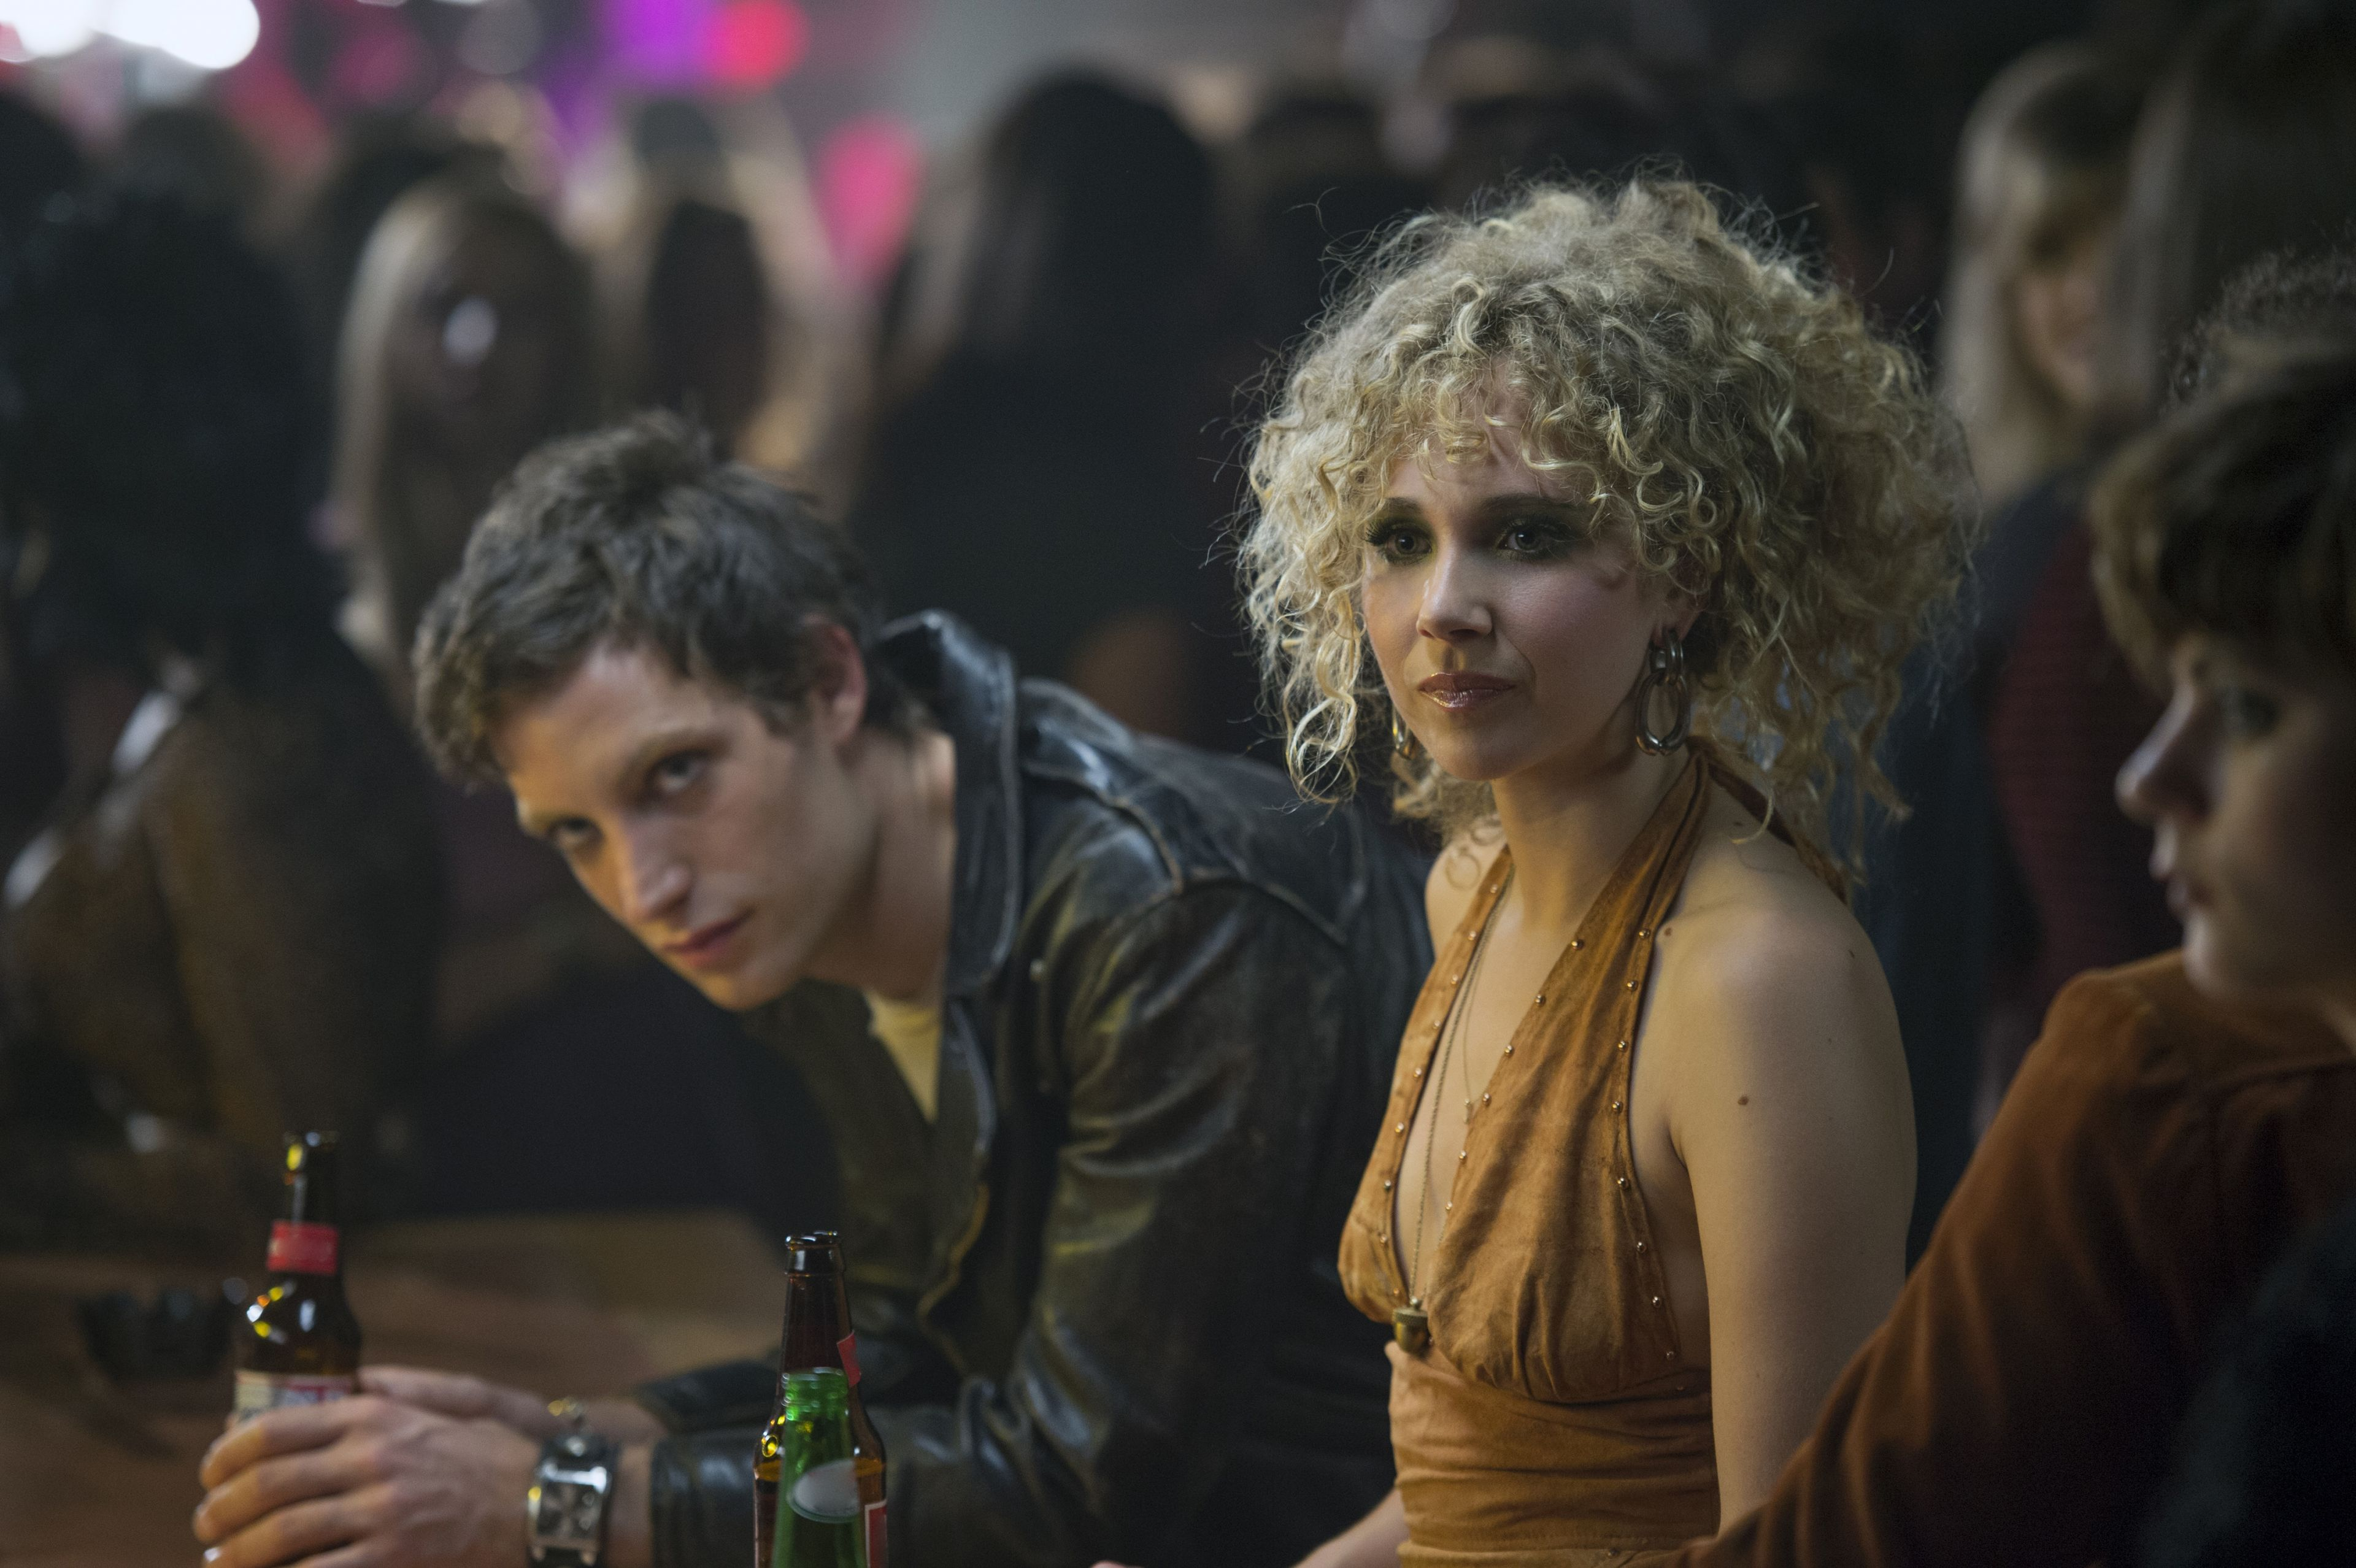 103 James Jagger Juno Temple - Photo by Macall B Polay